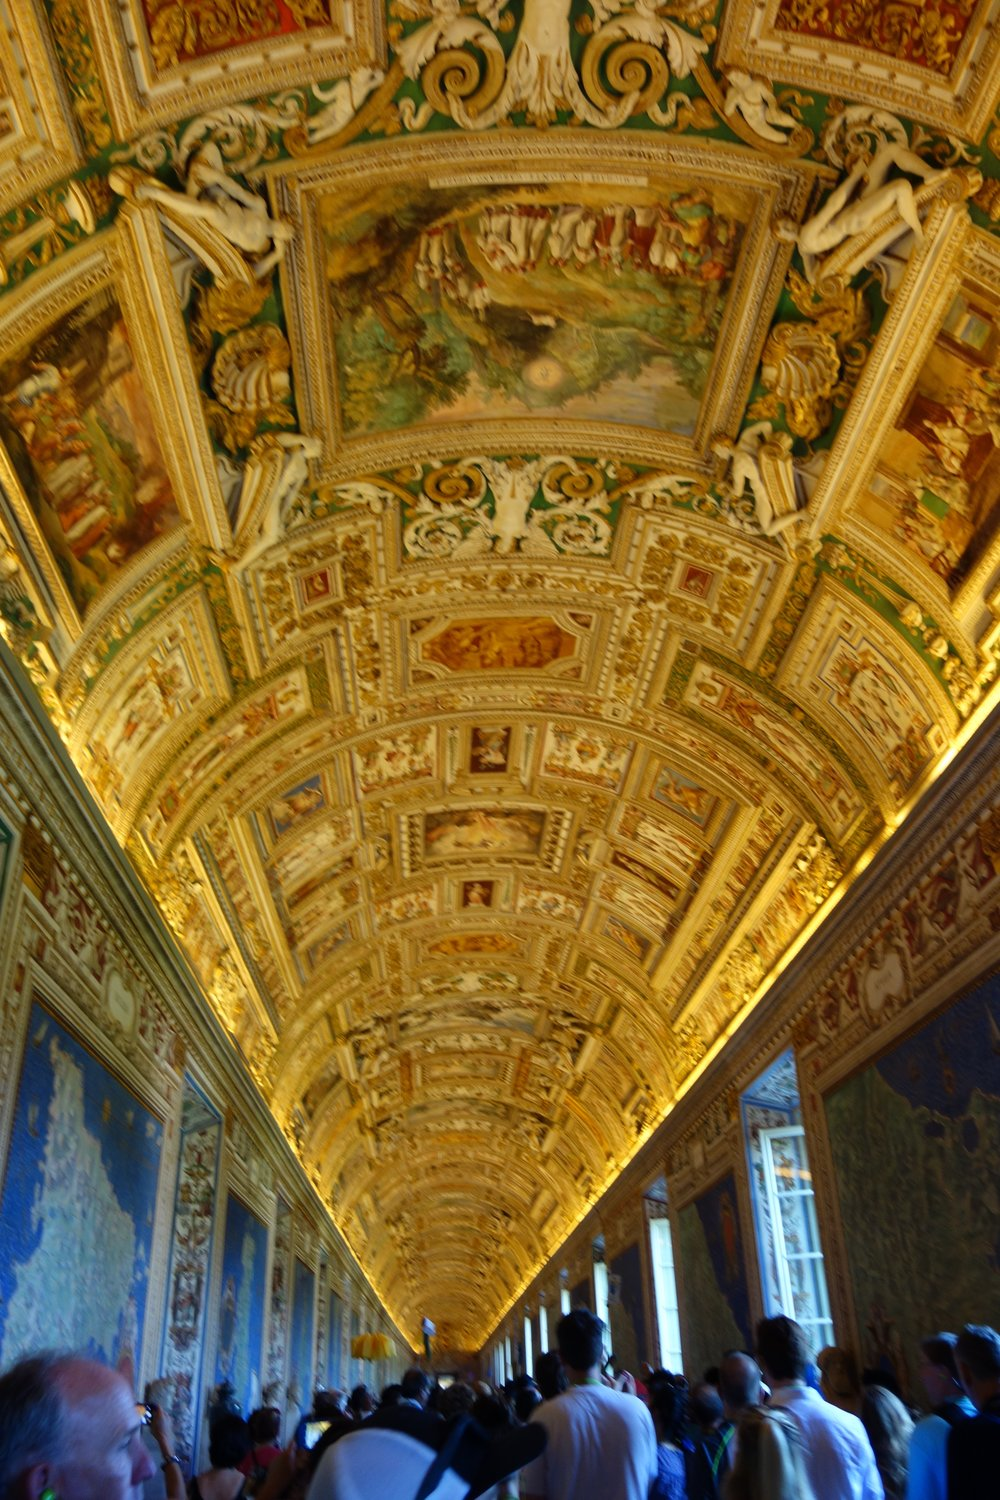 Inside the Vatican Museums